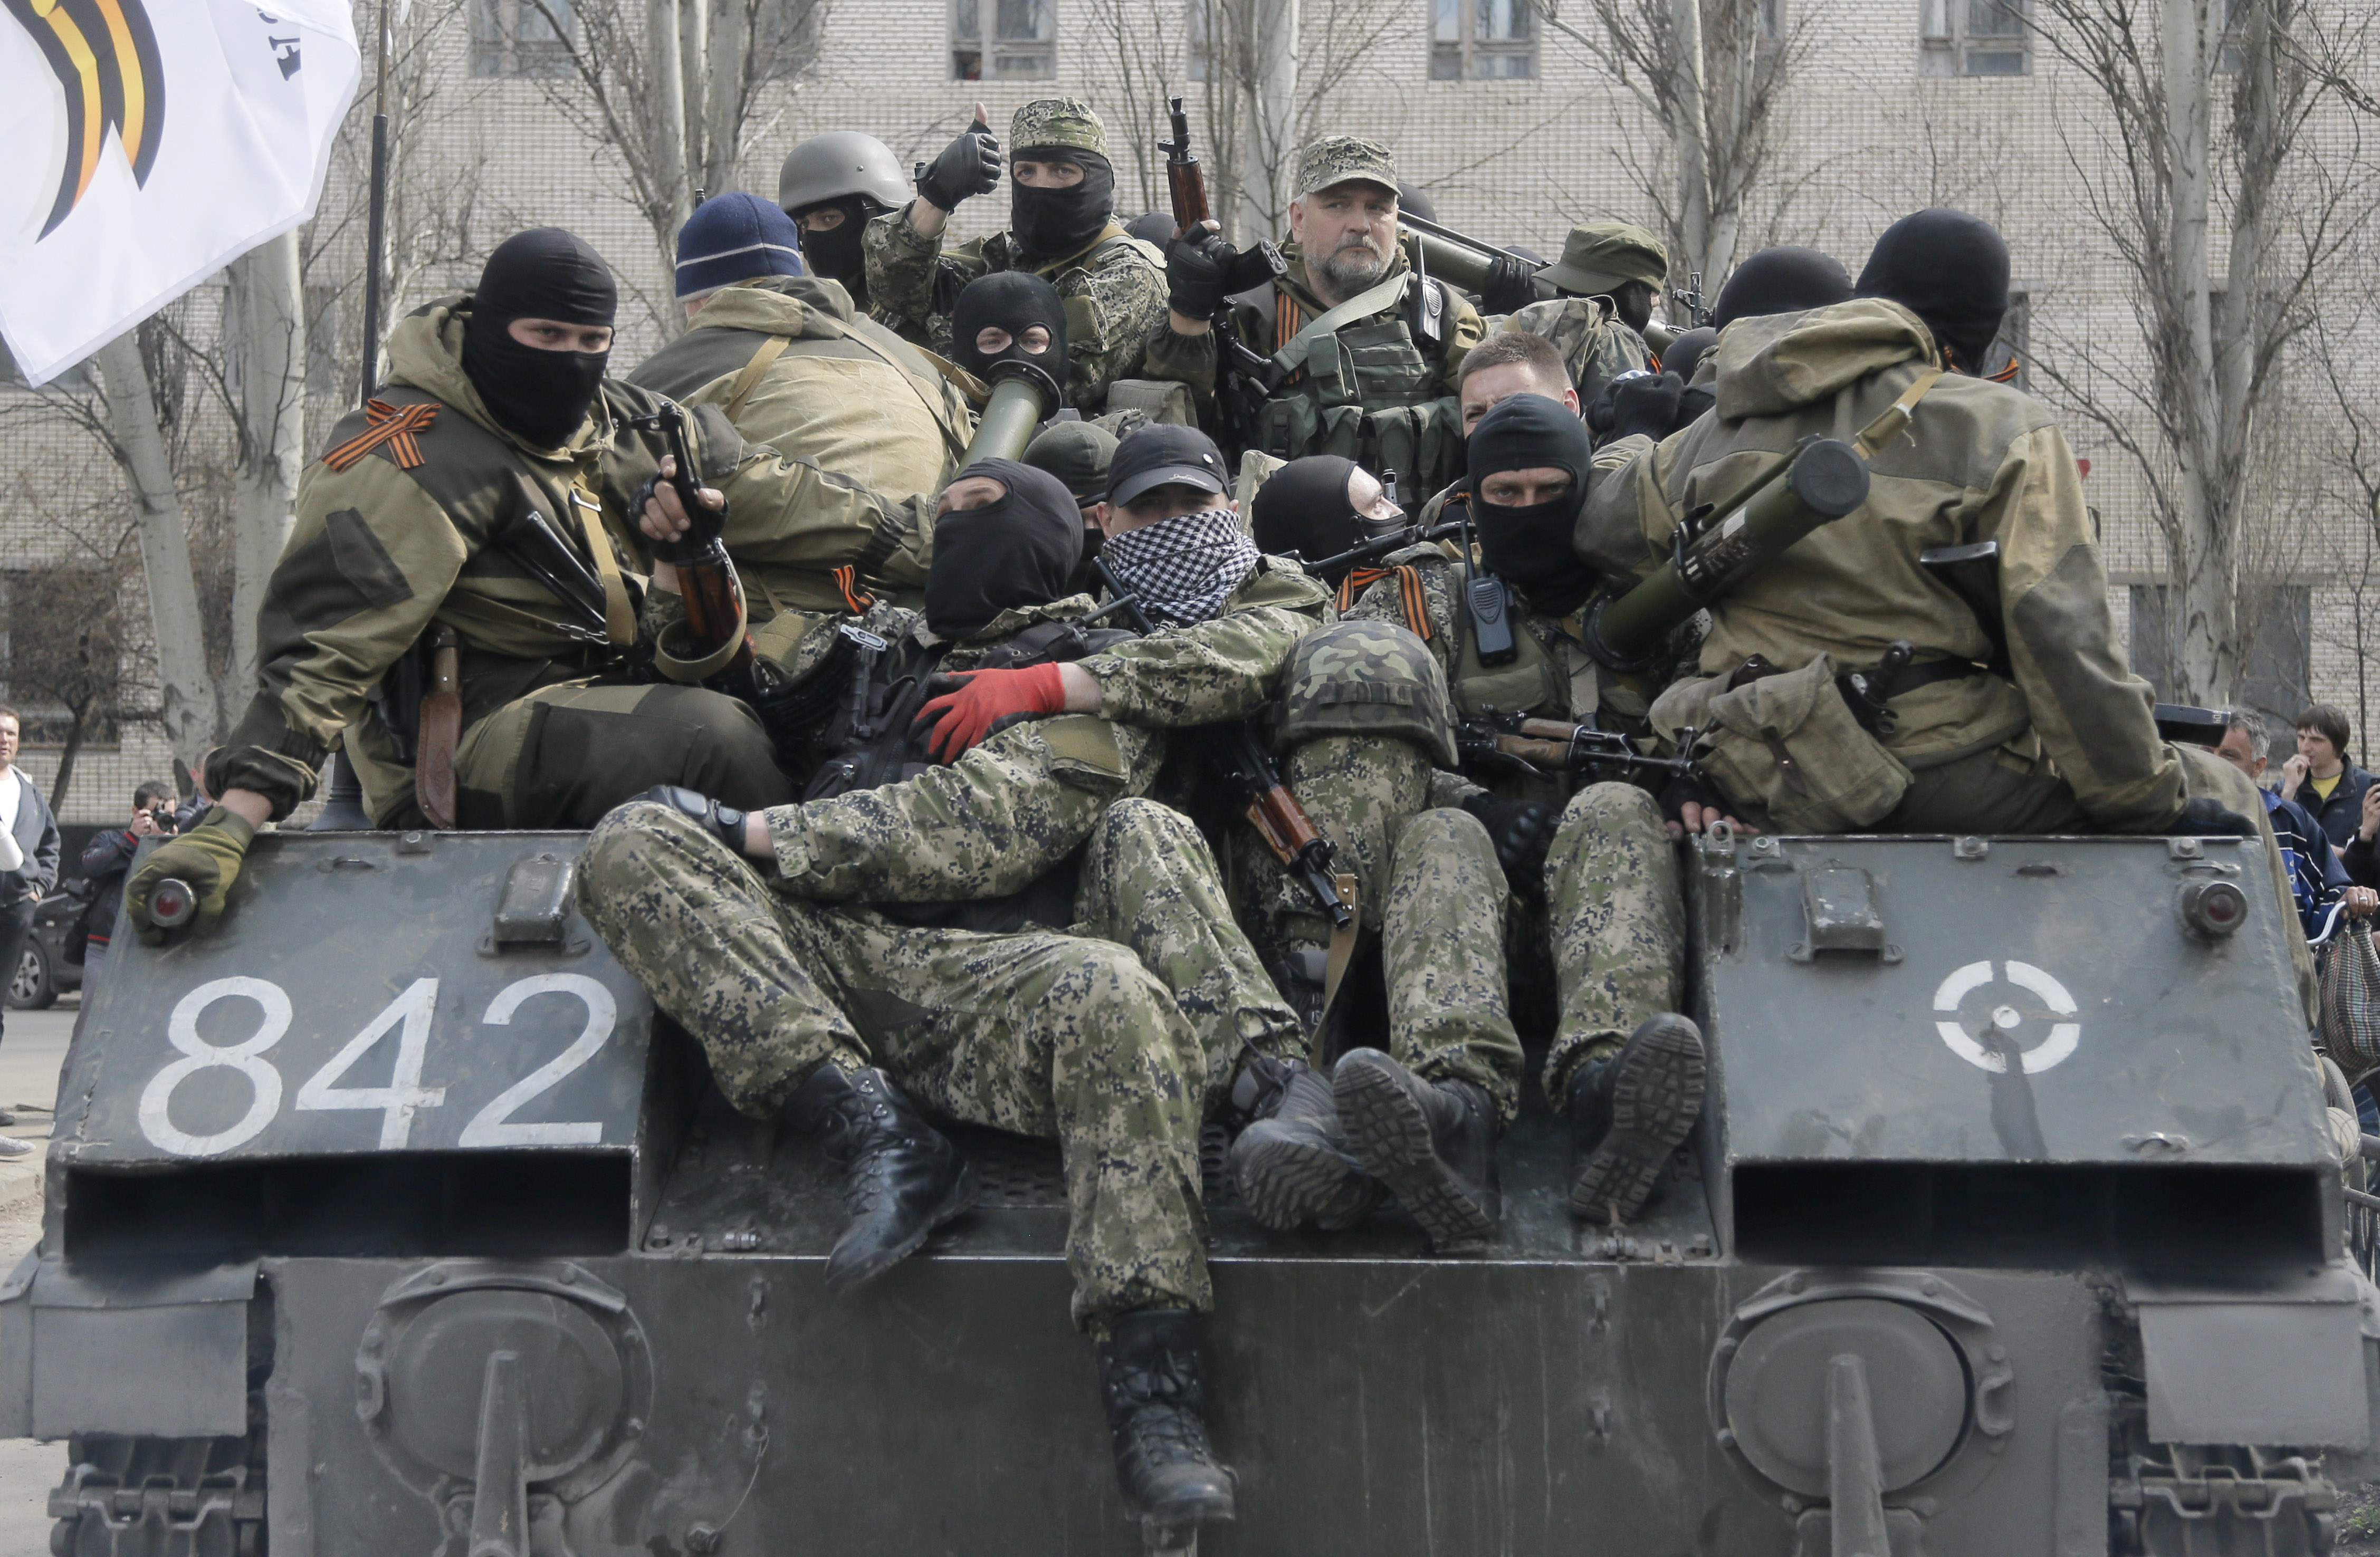 A combat vehicle with pro-Russian gunman on top runs through downtown Slovyansk, eastern Ukraine, on Wednesday. The troops on those vehicles wore green camouflage uniforms, had automatic weapons and grenade launchers and at least one had the St. George ribbon attached to his uniform, which has become a symbol of the pro-Russian insurgency in the area. | AP